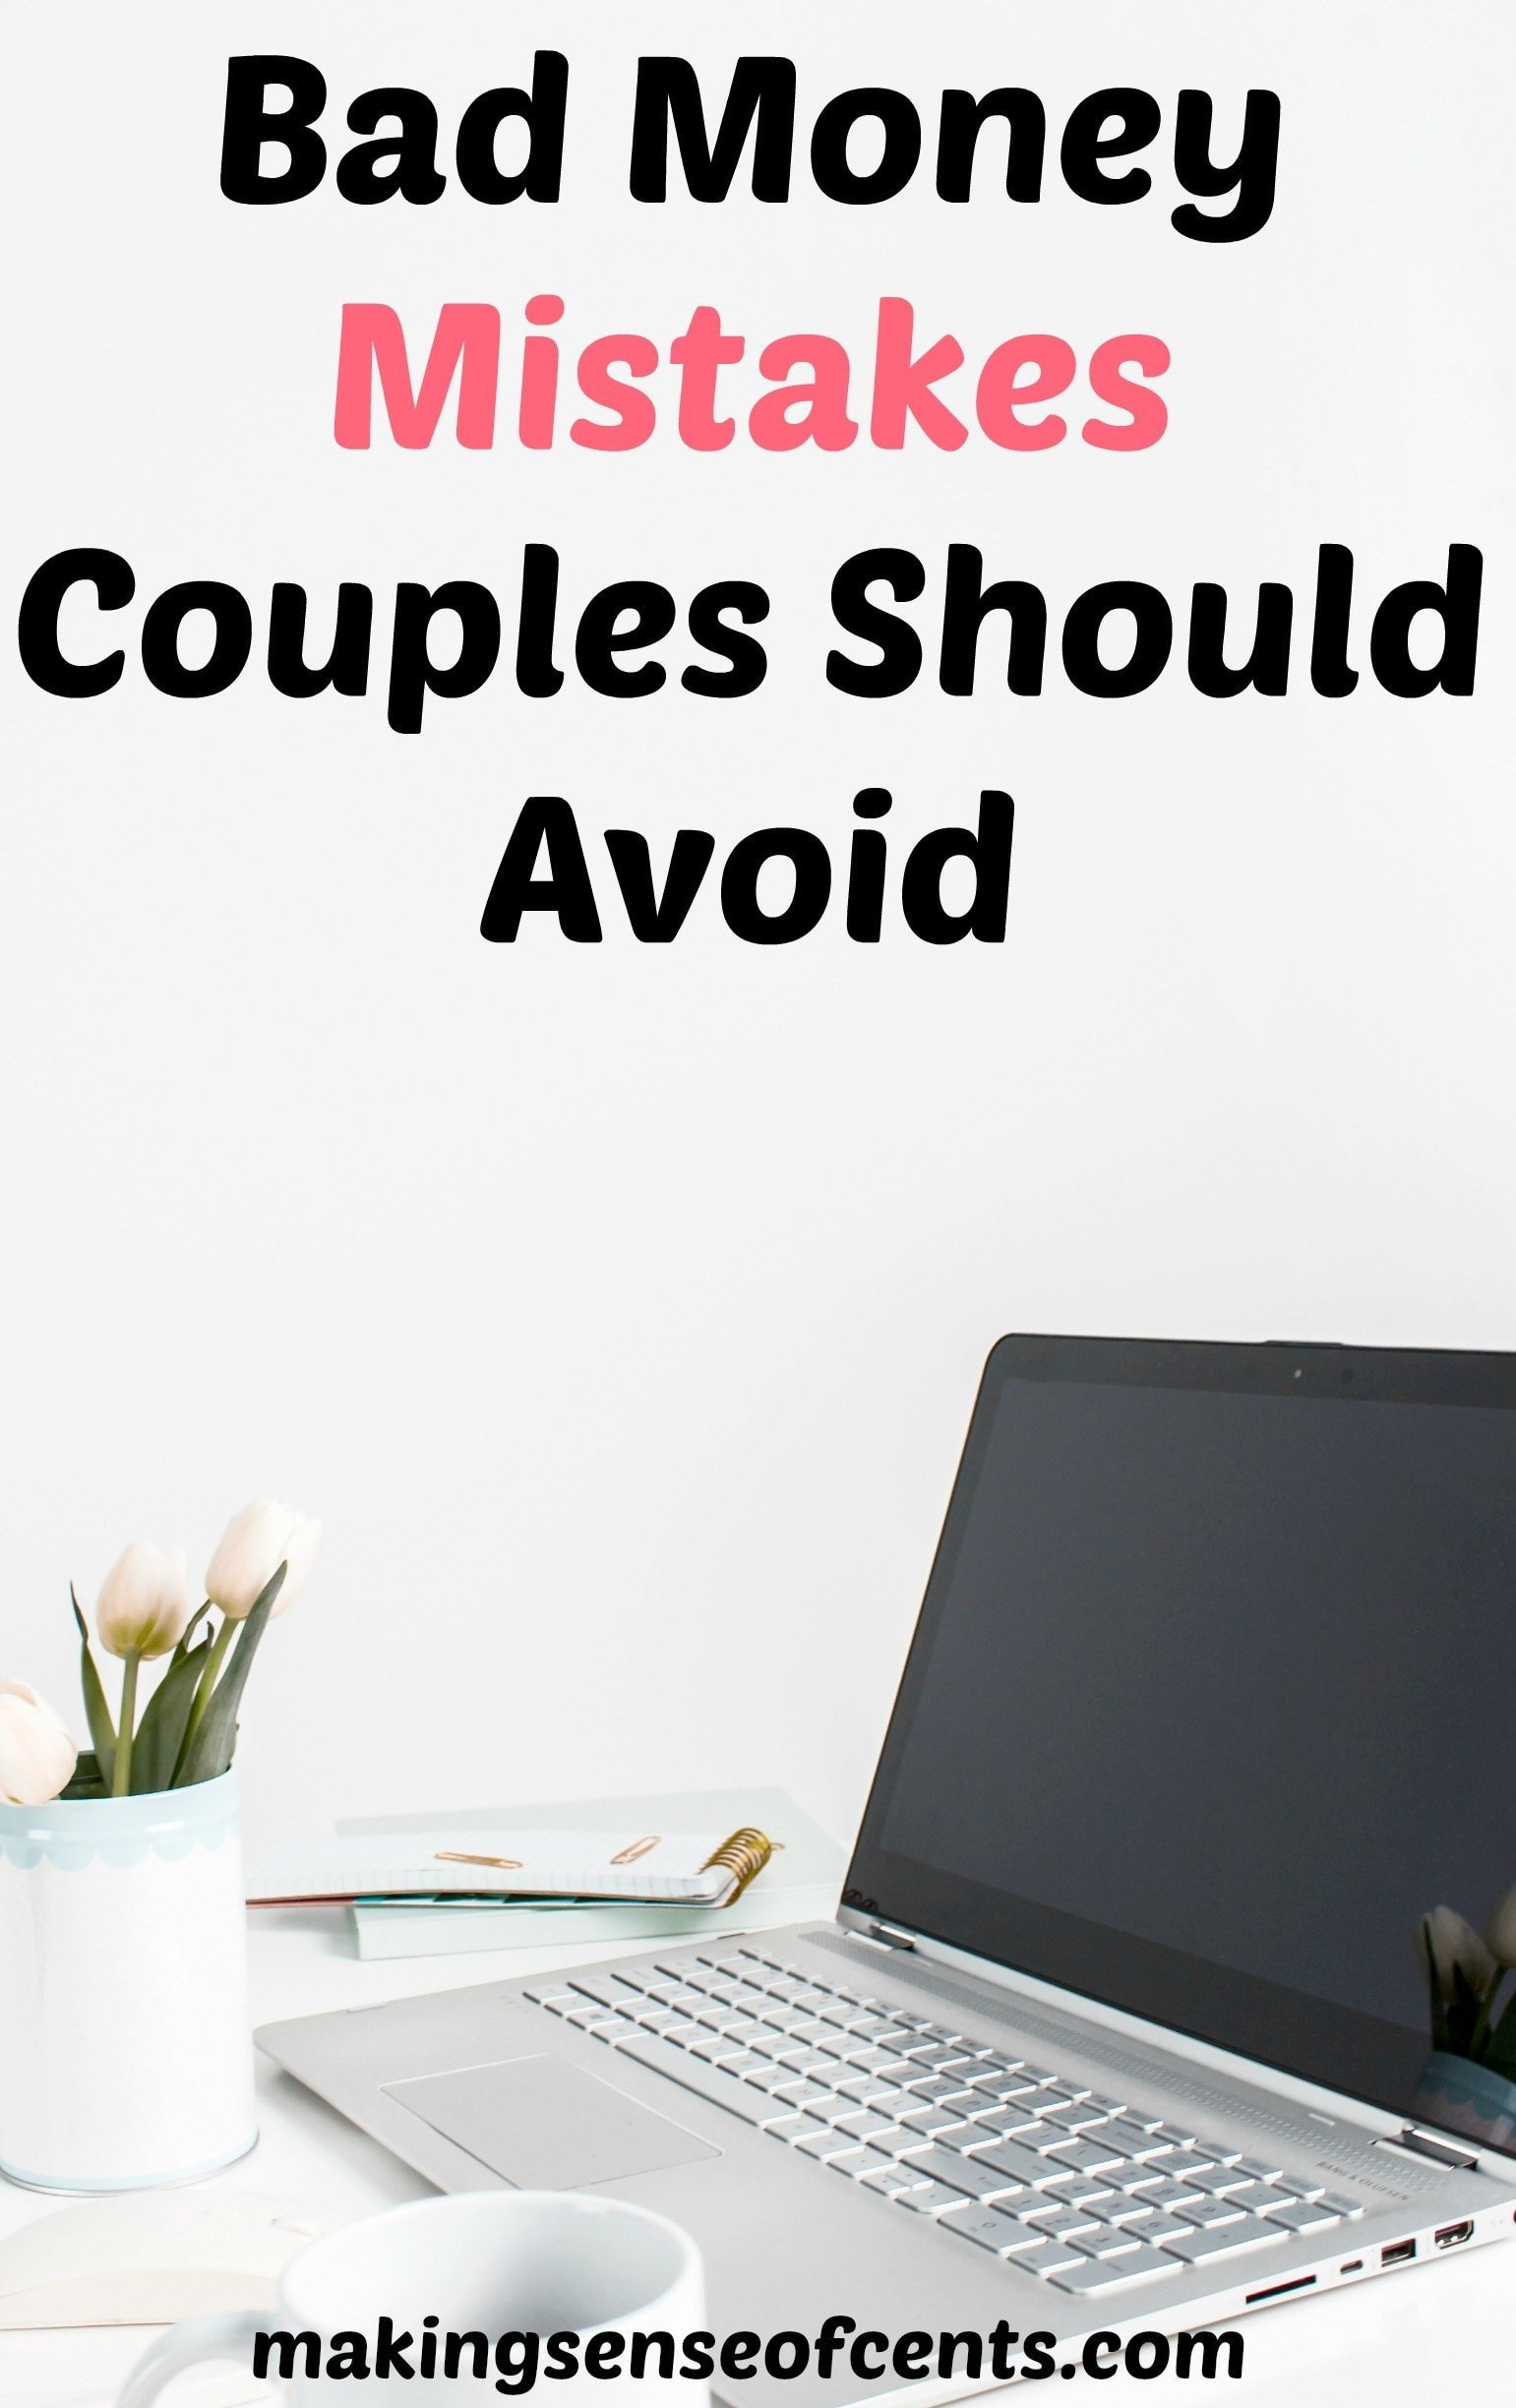 Bad Money Mistakes Couples Should Avoid